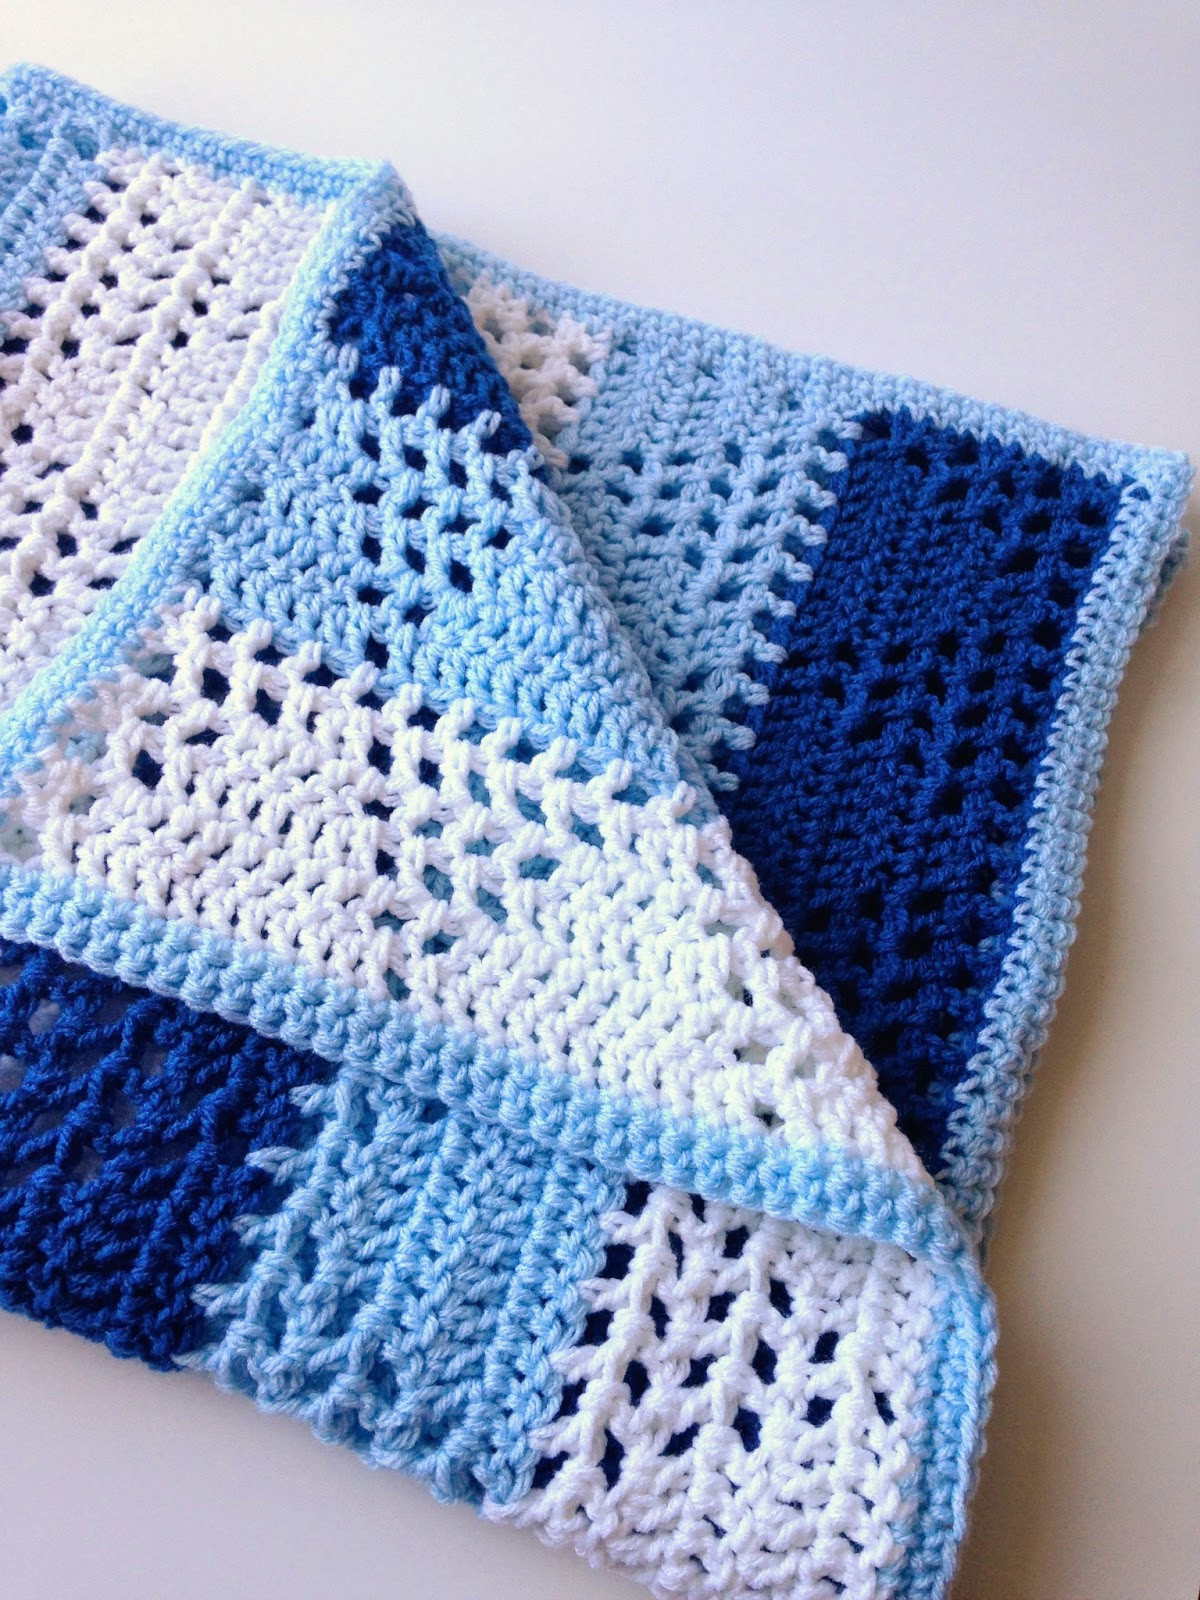 Baby Boy Crochet Blanket Patterns Awesome 5 Little Monsters Triangles & Stripes Baby Blanket Of Baby Boy Crochet Blanket Patterns Beautiful Pics for Crochet Baby Boy Blanket Patterns